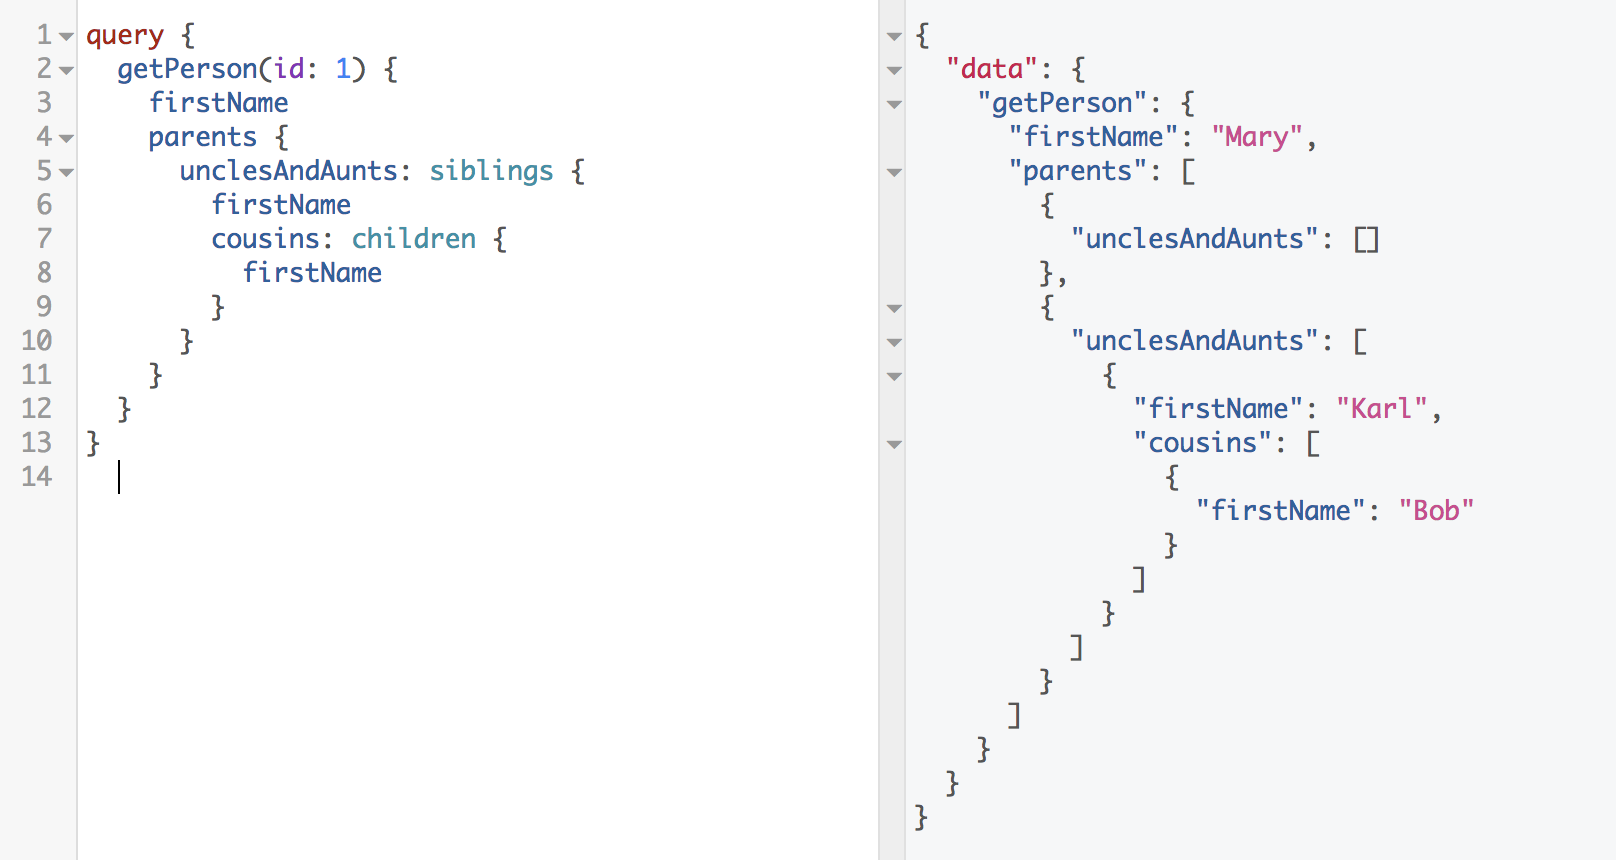 Building a Family Tree with GraphQL, Part 2: Adding New Resolvers